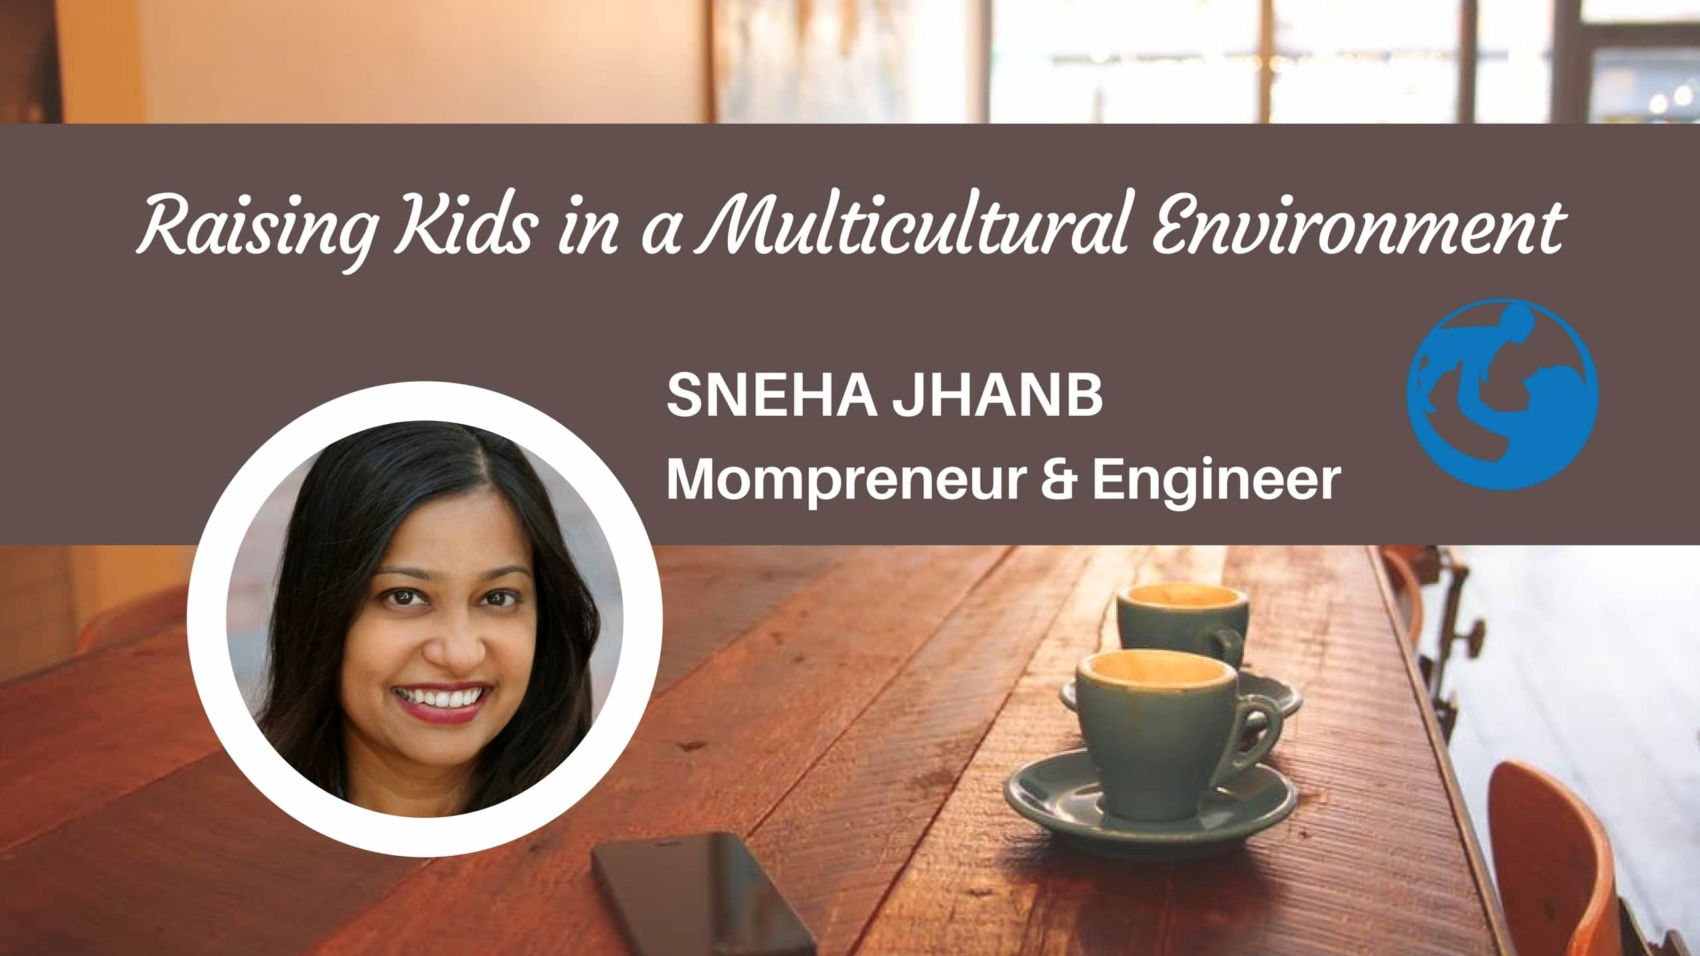 World of Raising Kids in a Multicultural Environment